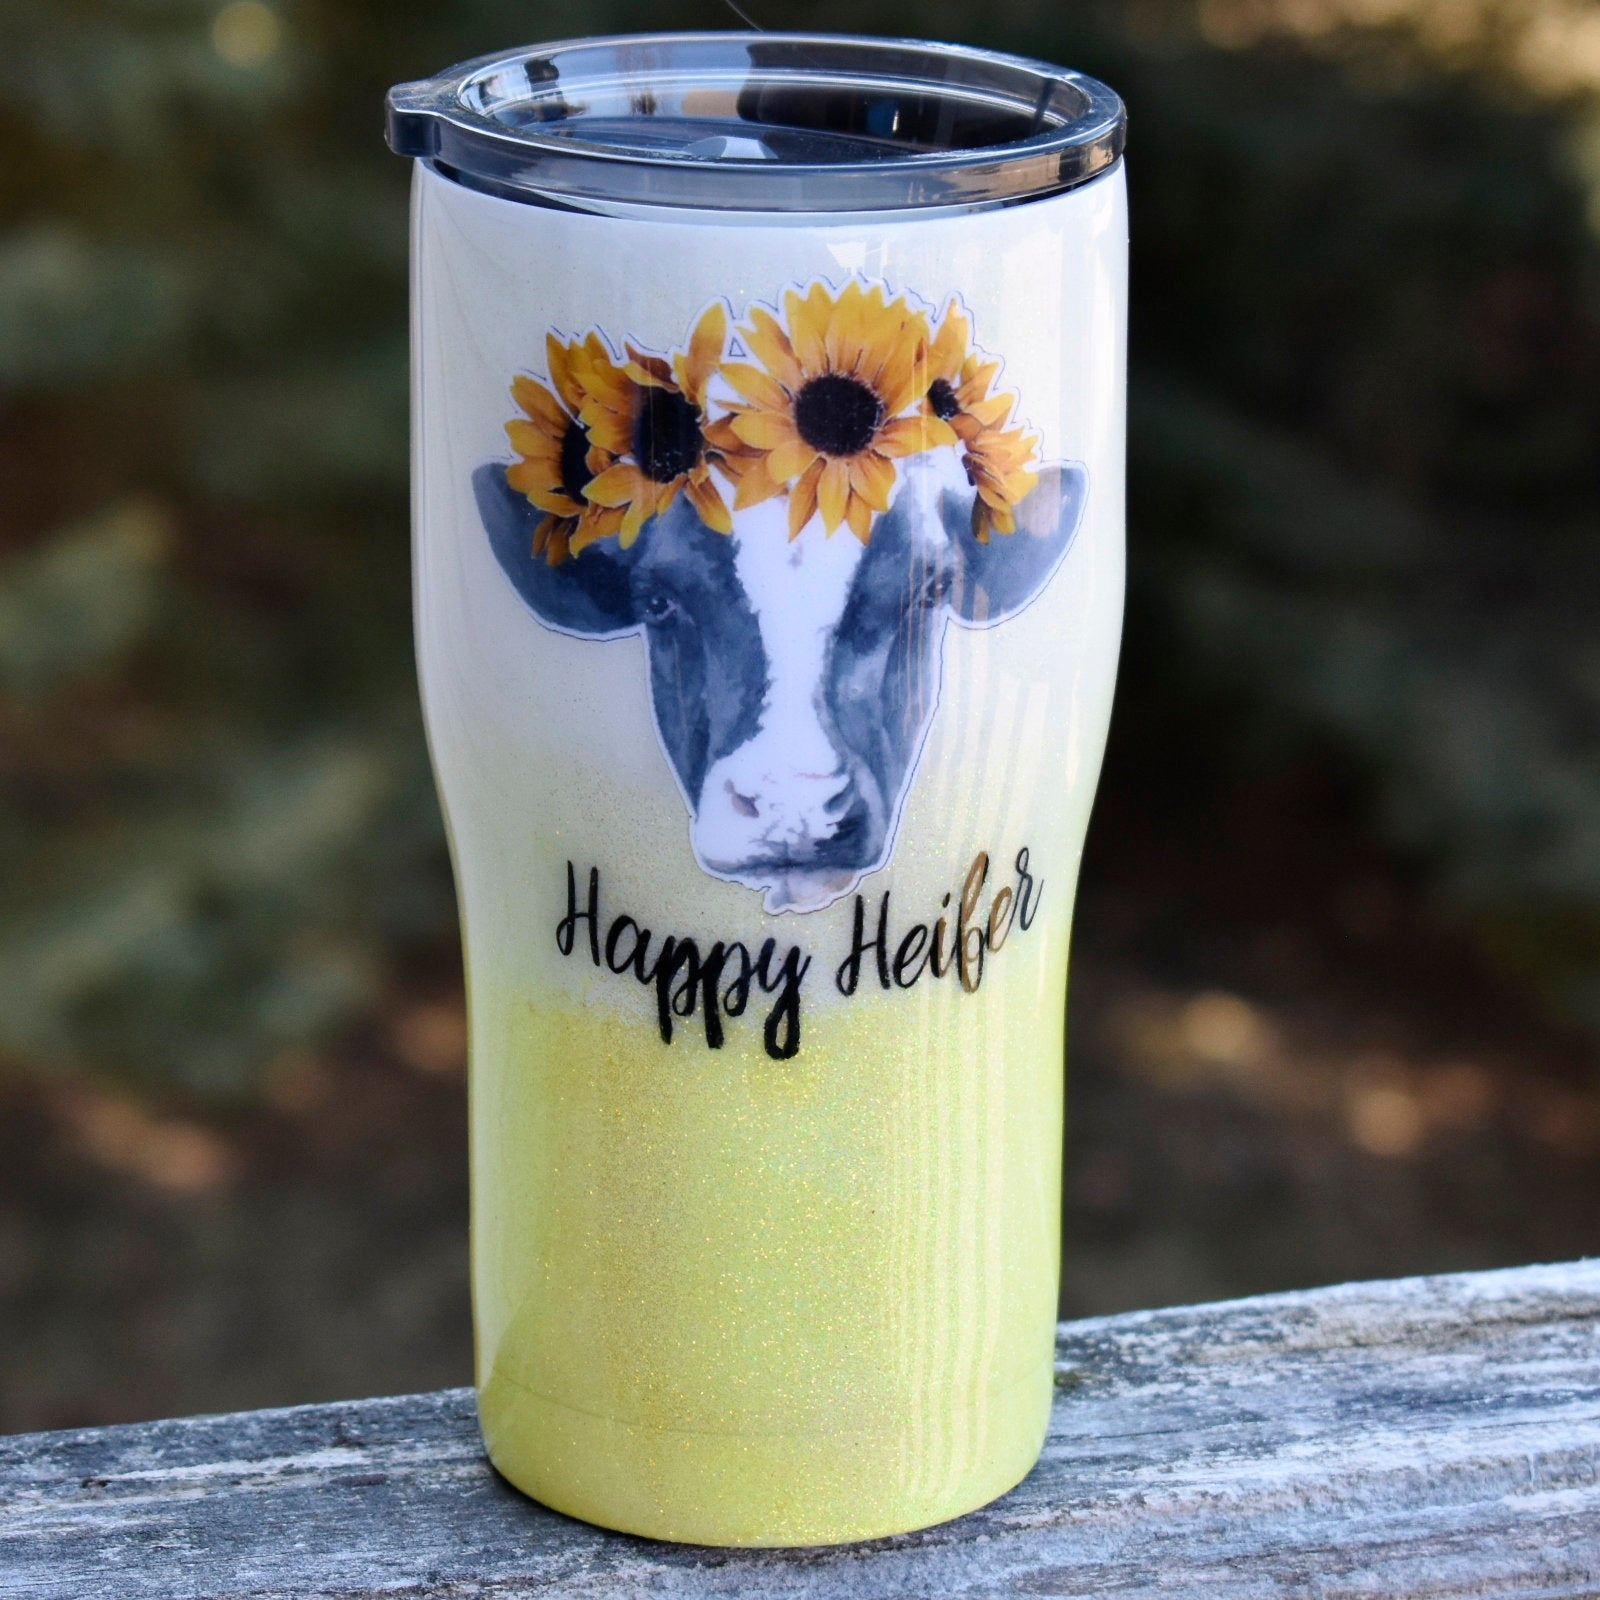 RTS Neon Yellow Glitter Ombre Happy Heifer Sunflower  20 oz Glitter Tumbler | Happy Cow | Cowgirl | Cow Lover | Farm Girl | Cow Tumbler